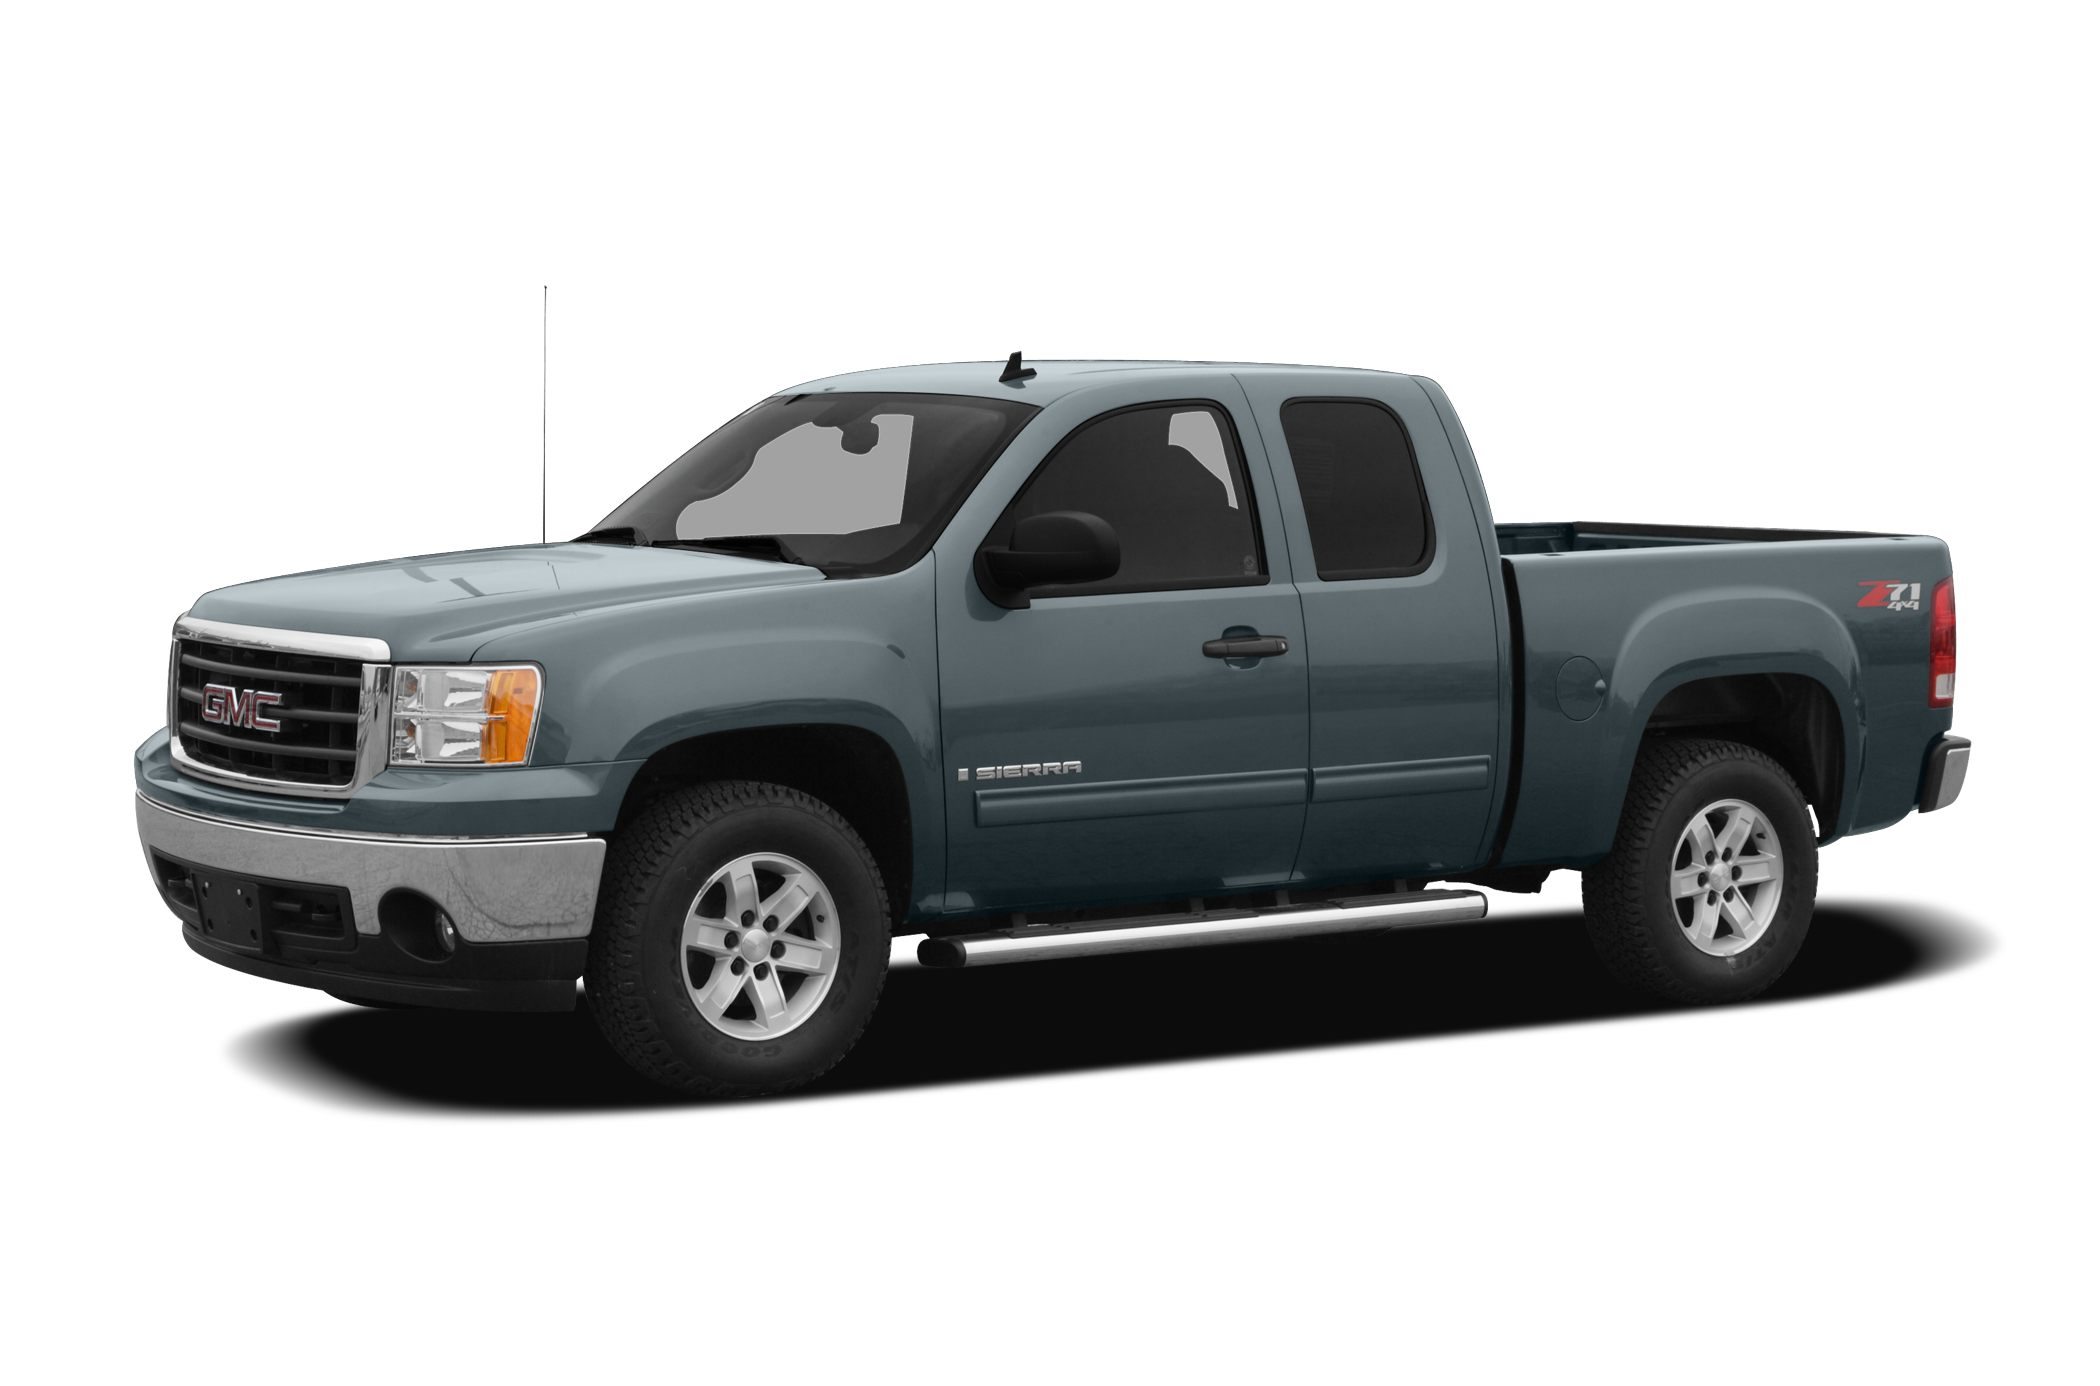 2008 Gmc Sierra 1500 Slt 4x4 Extended Cab 5 75 Ft Box 133 9 In Wb Specs And Prices